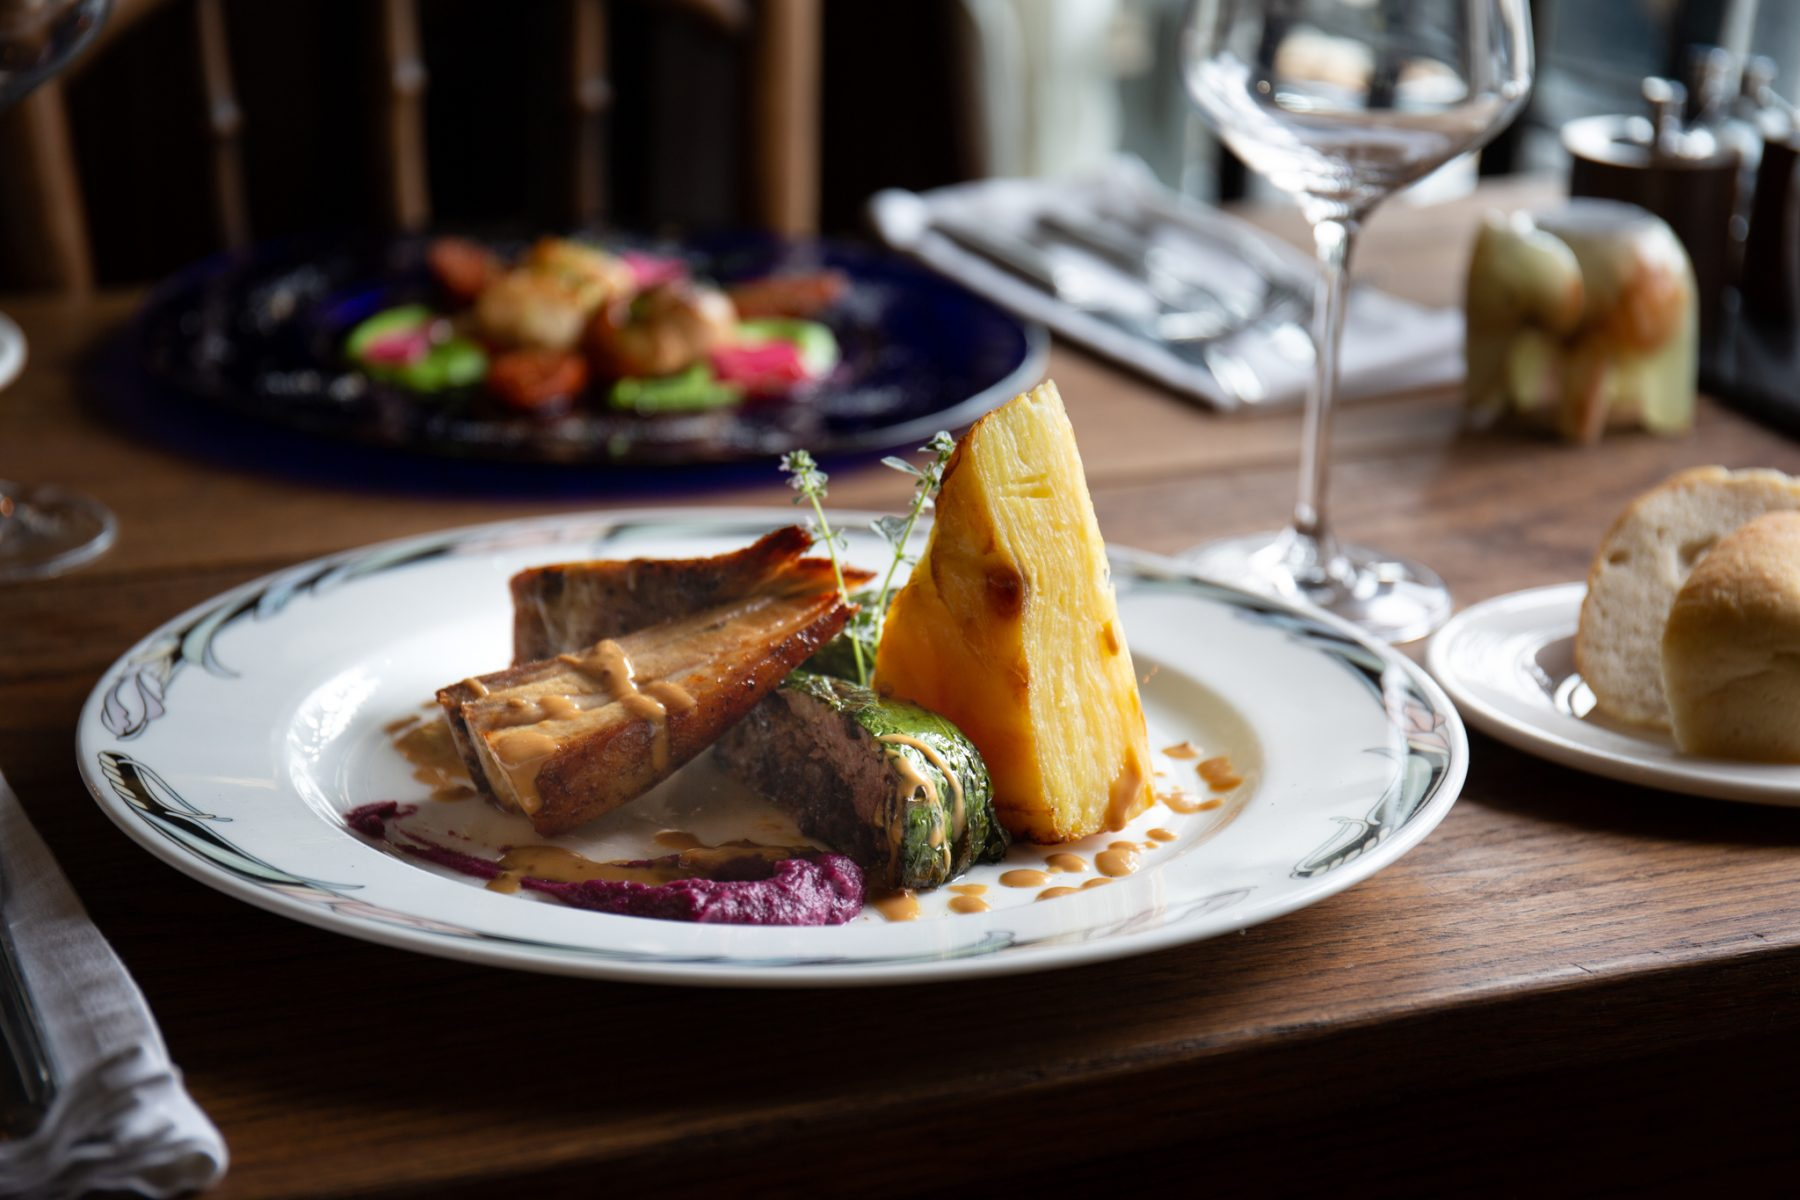 A main dish from The Old Post in Chesterfield - brand photography